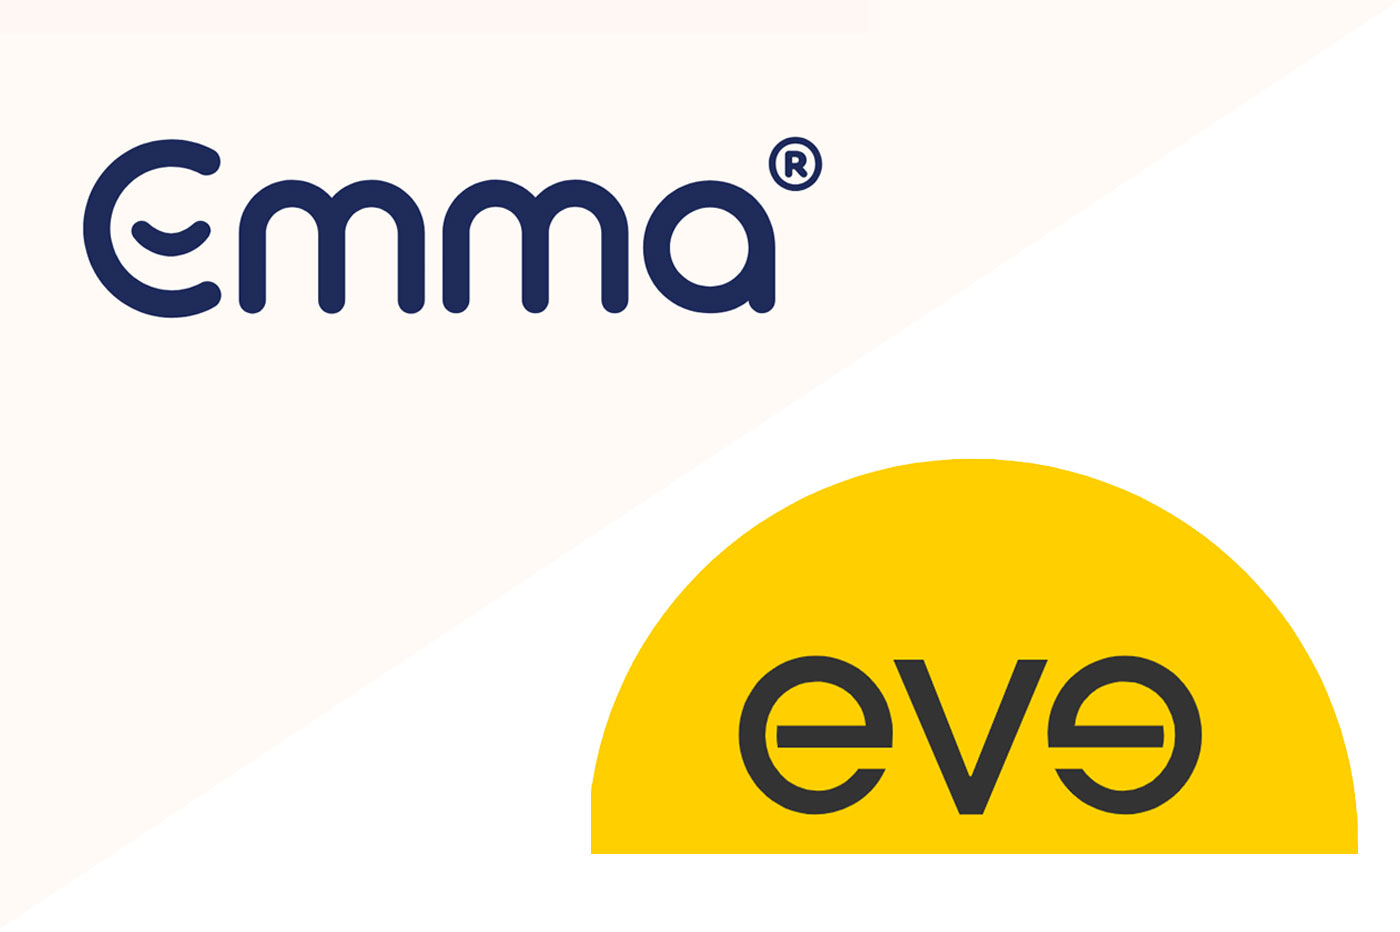 Comparatif Emma vs Eve Matelas